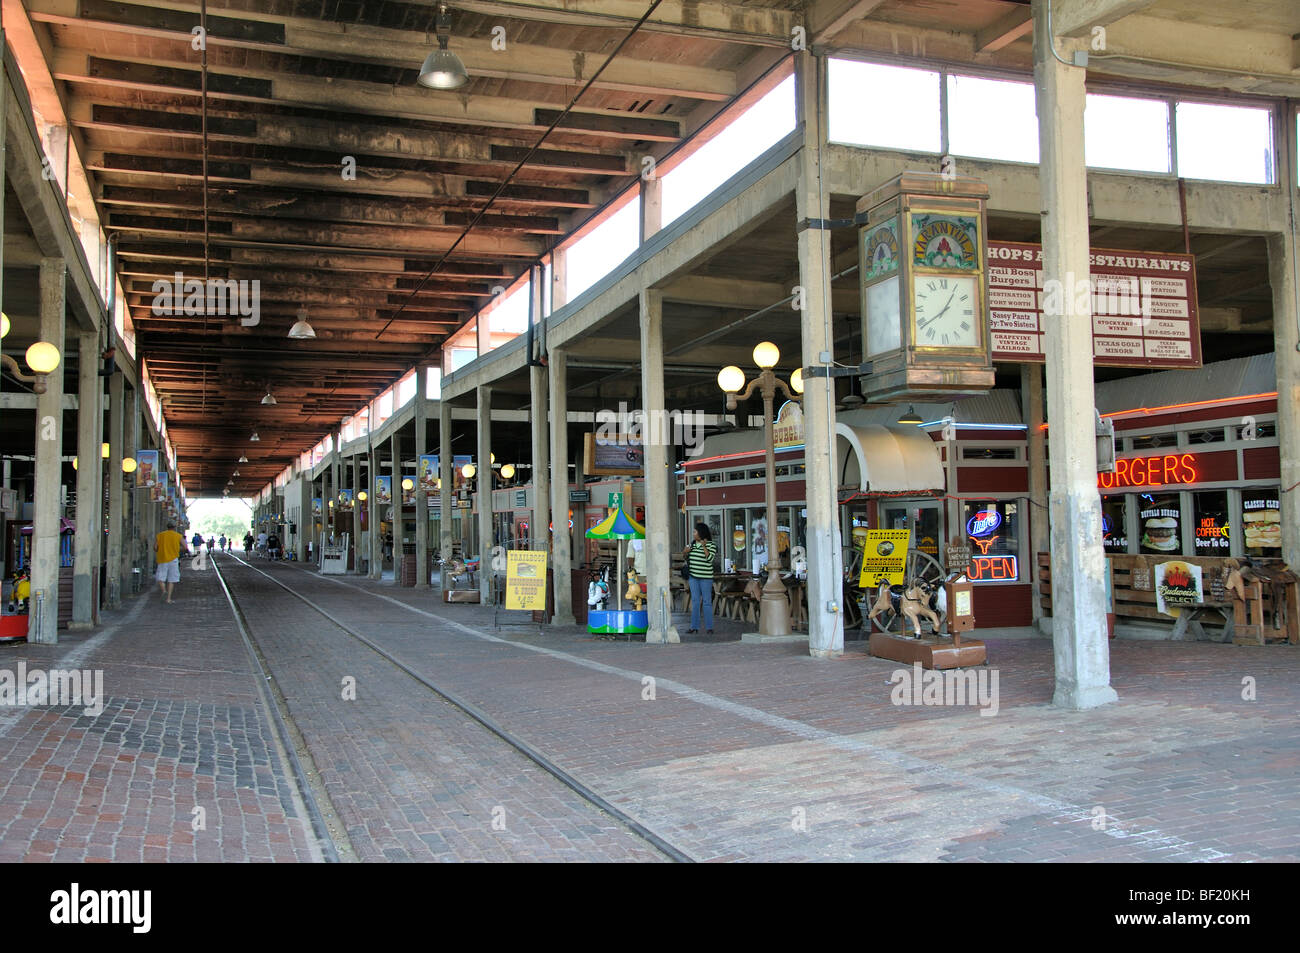 Stockyards restaurants and gift shops, Fort Worth, Texas Stock ...